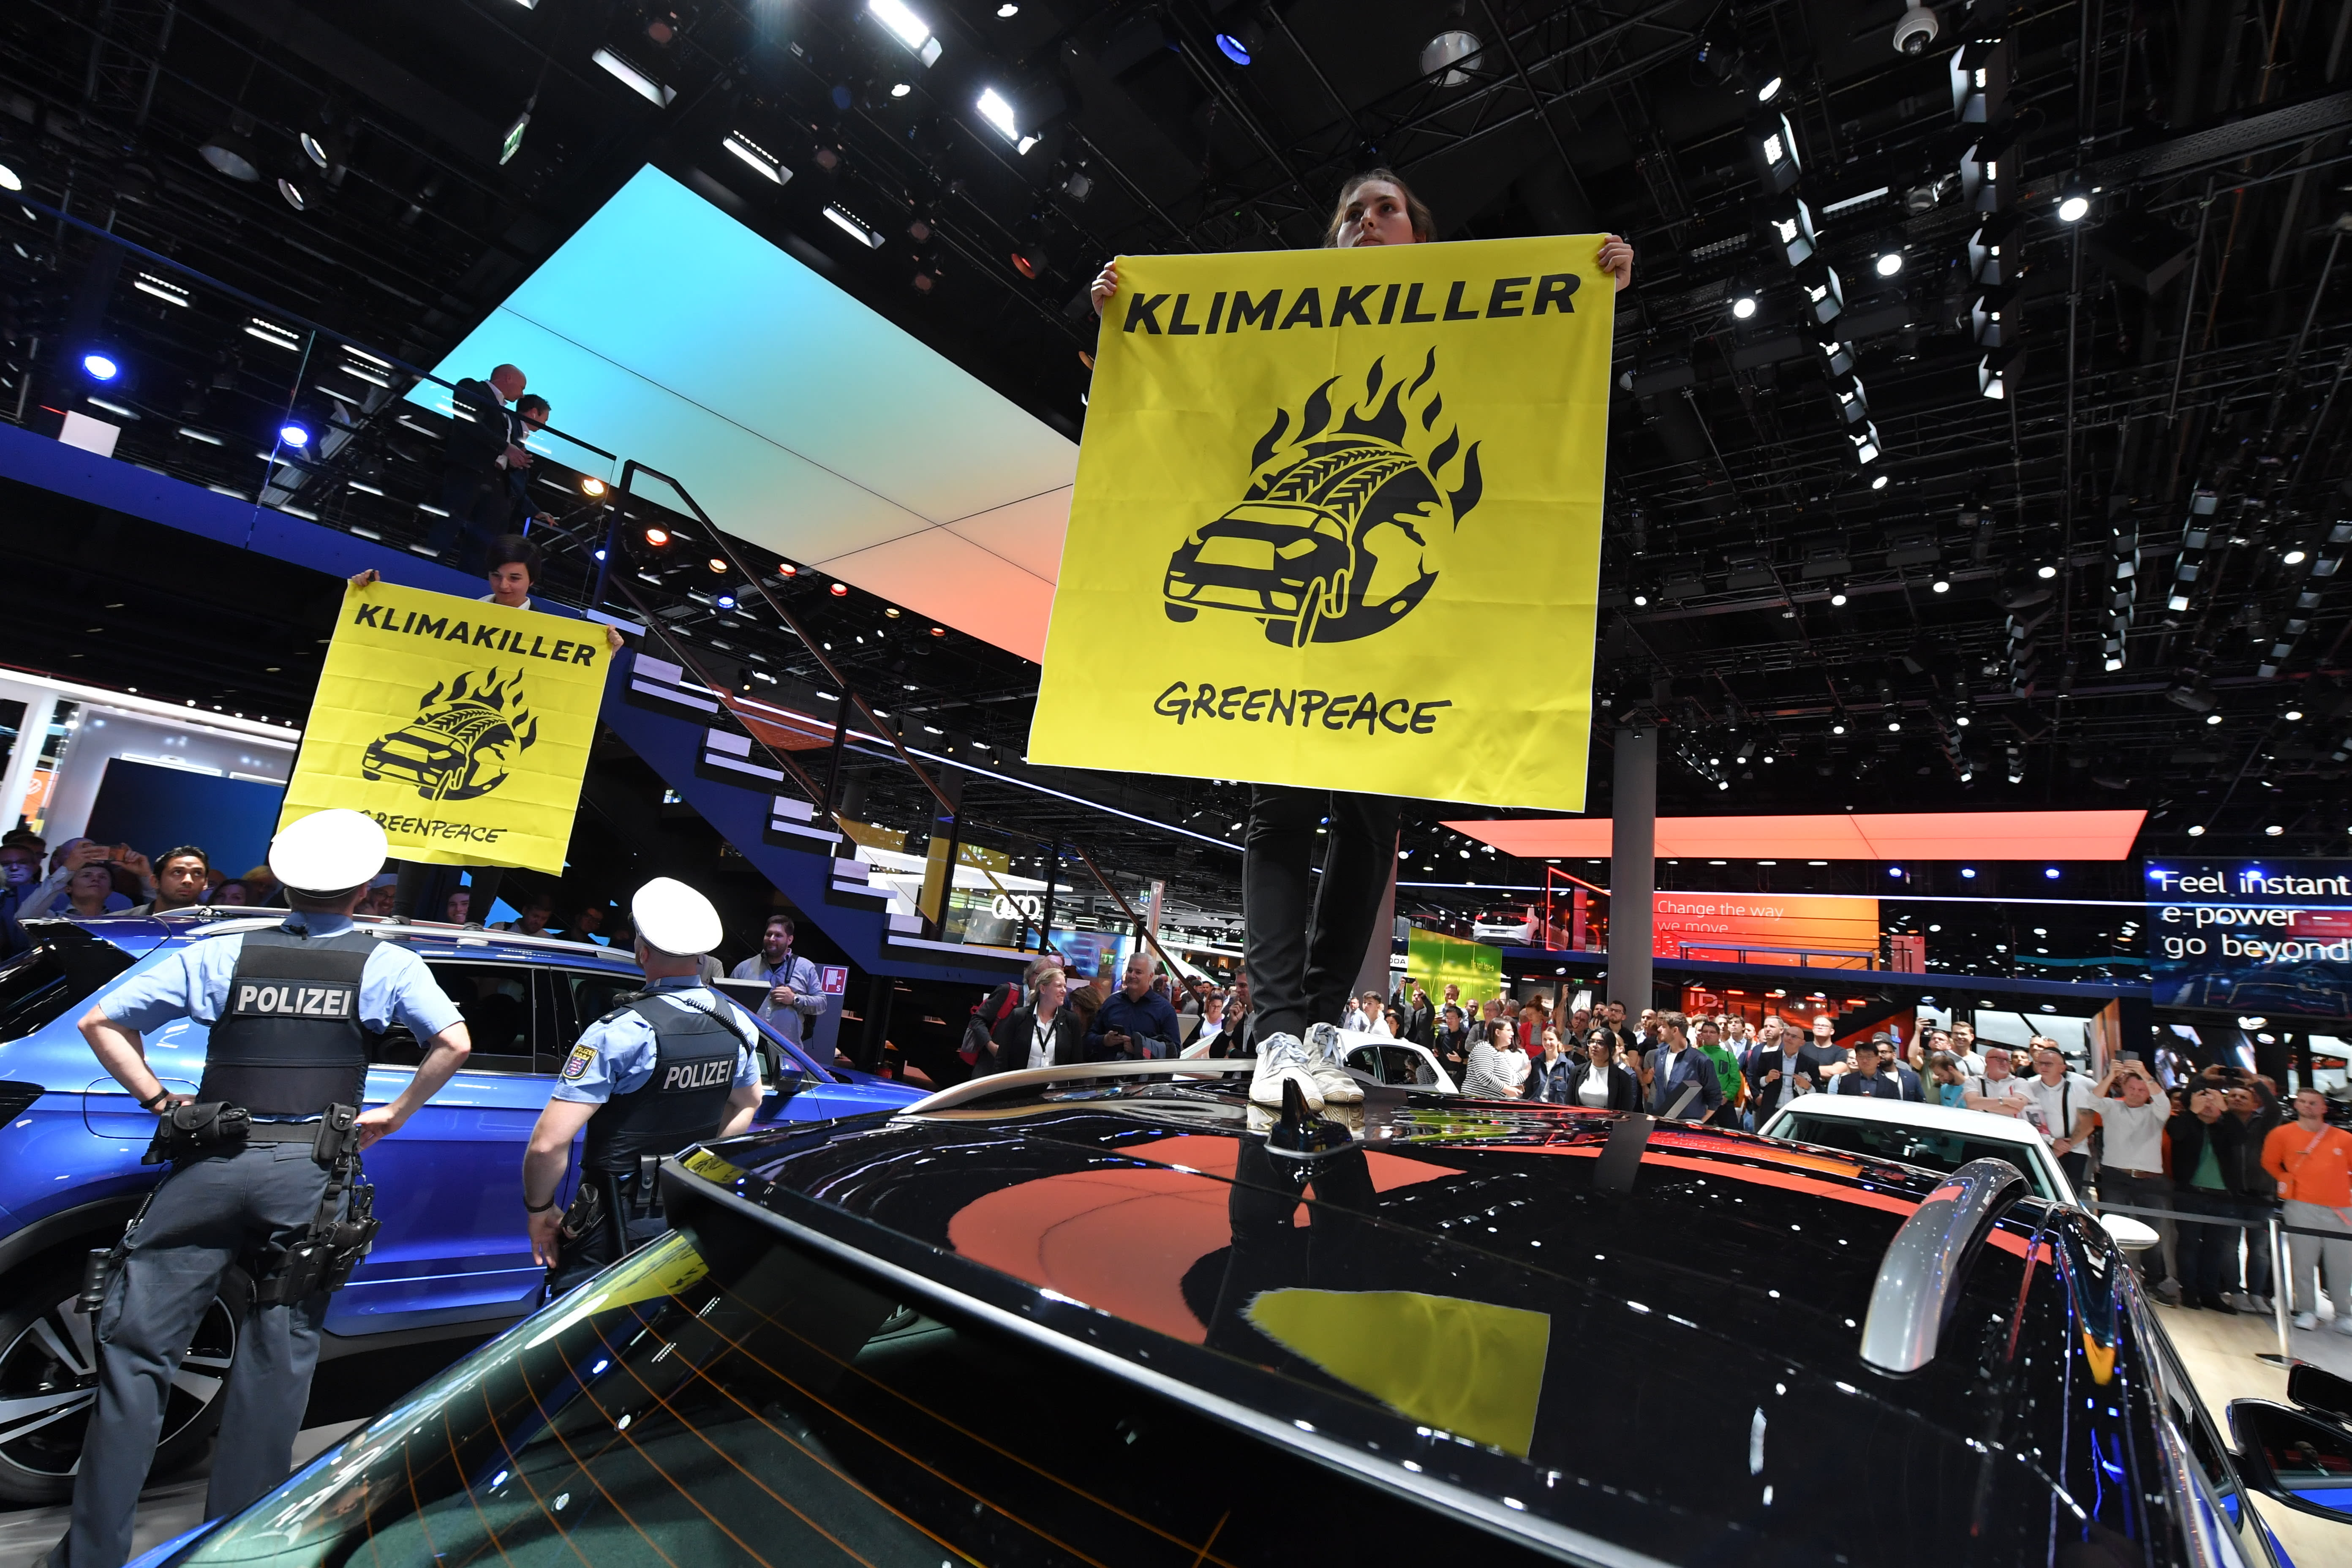 Greenpeace activists protest at the IAA Auto Show in Frankfurt, Germany, Thursday, Sept. 12, 2019. The banner is reading 'Klimakiller-Climate killer'. (Boris Roessler/dpa via AP)